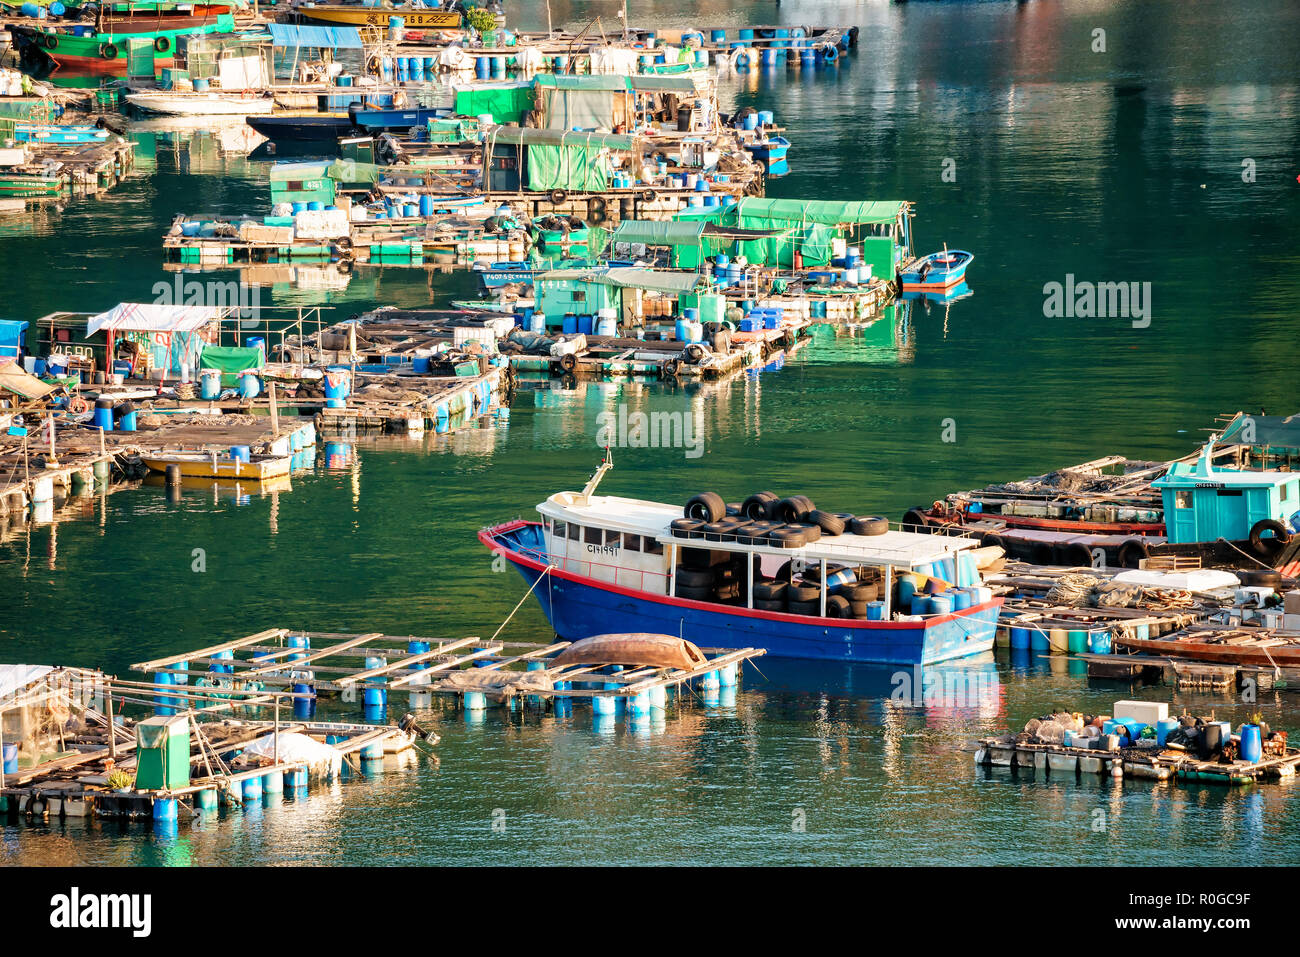 Hong Kong, China - January 25, 2016: Fish farming rafts in the bay of Sok Kwu Wan fisherfolks village viewed from the observation deck of the Family W - Stock Image